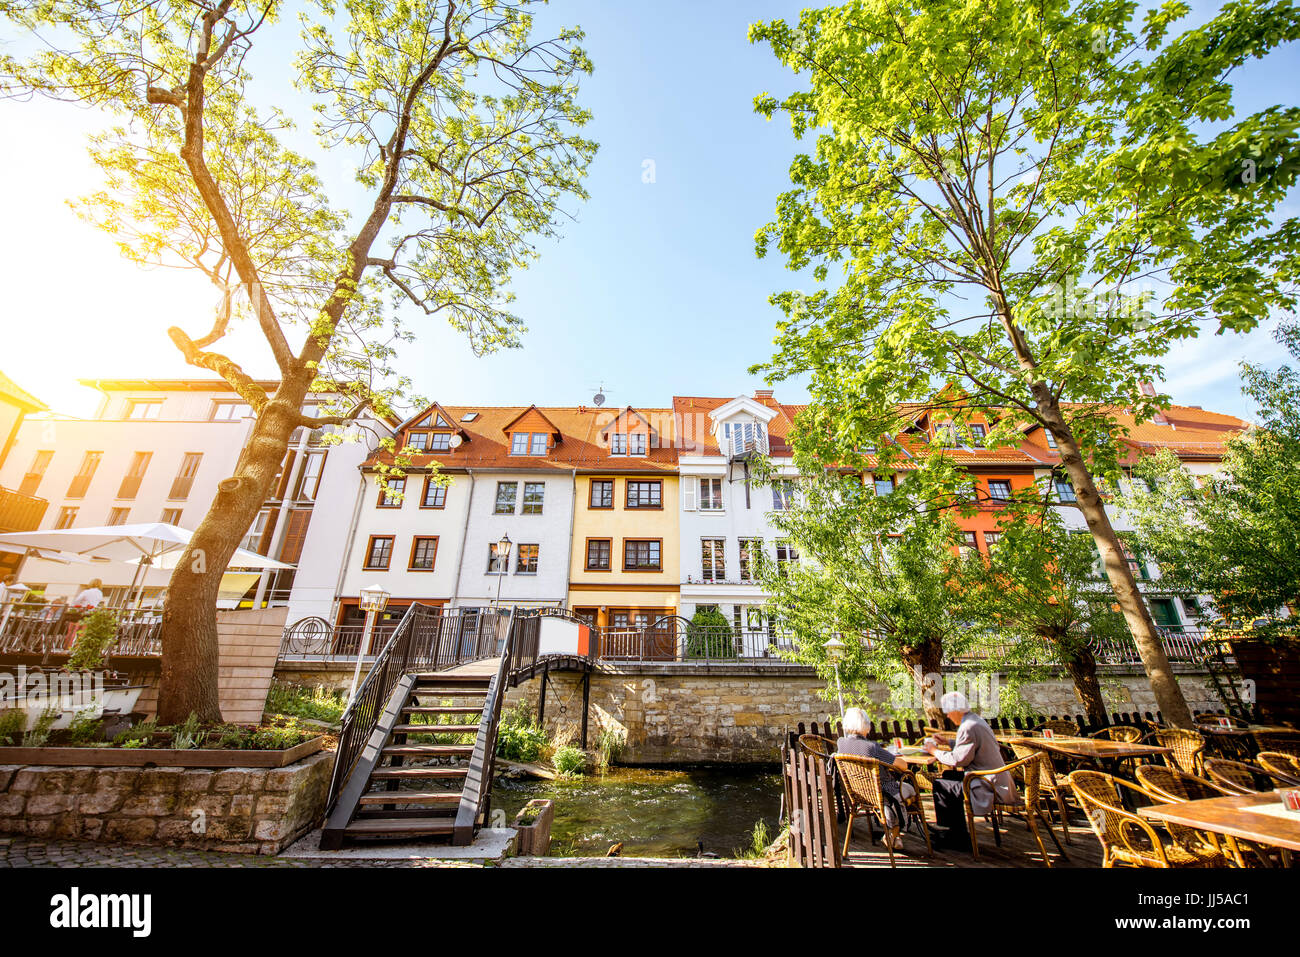 Erfurt city in Germany - Stock Image